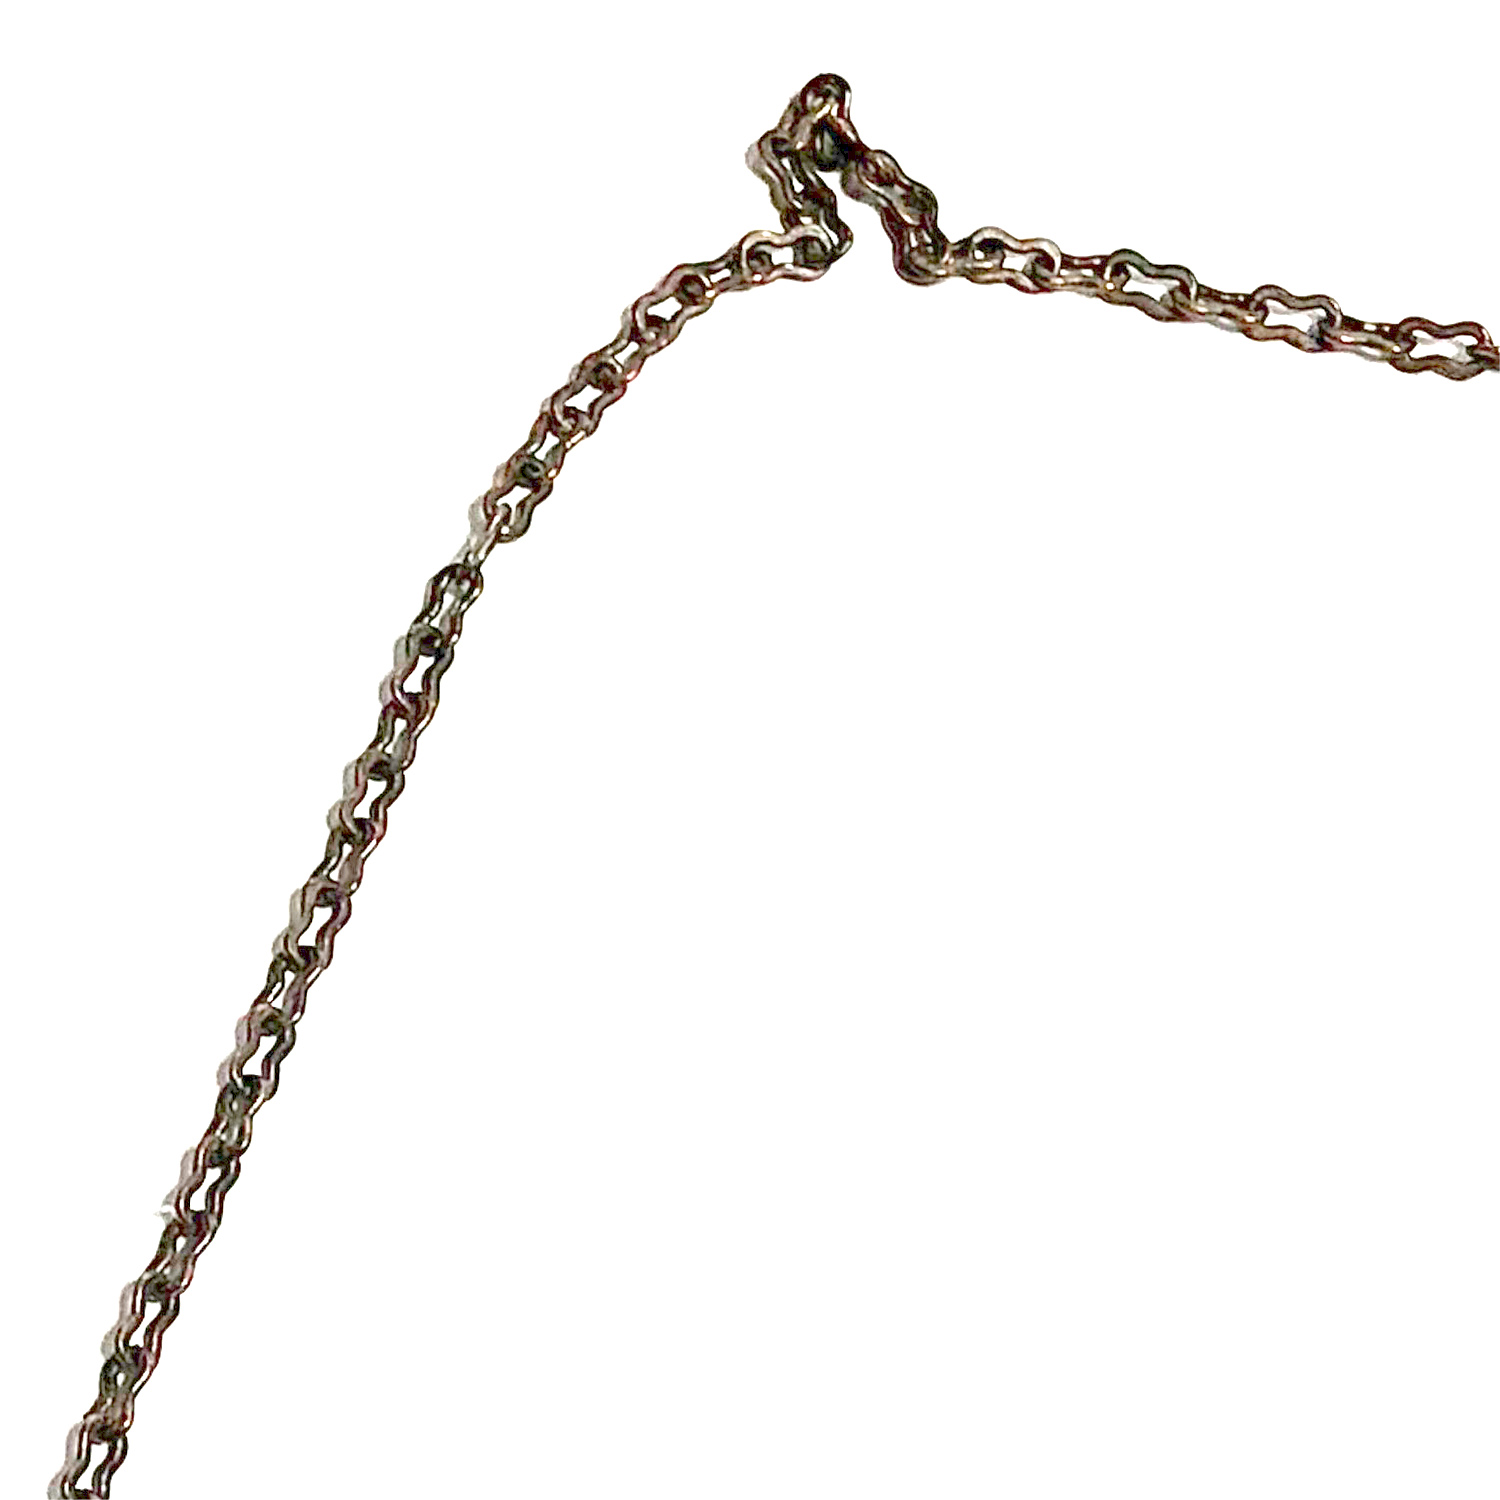 Vintaj Natural Brass Fine Ornate Chain 2.2x3.8mm x 6 feet CH10